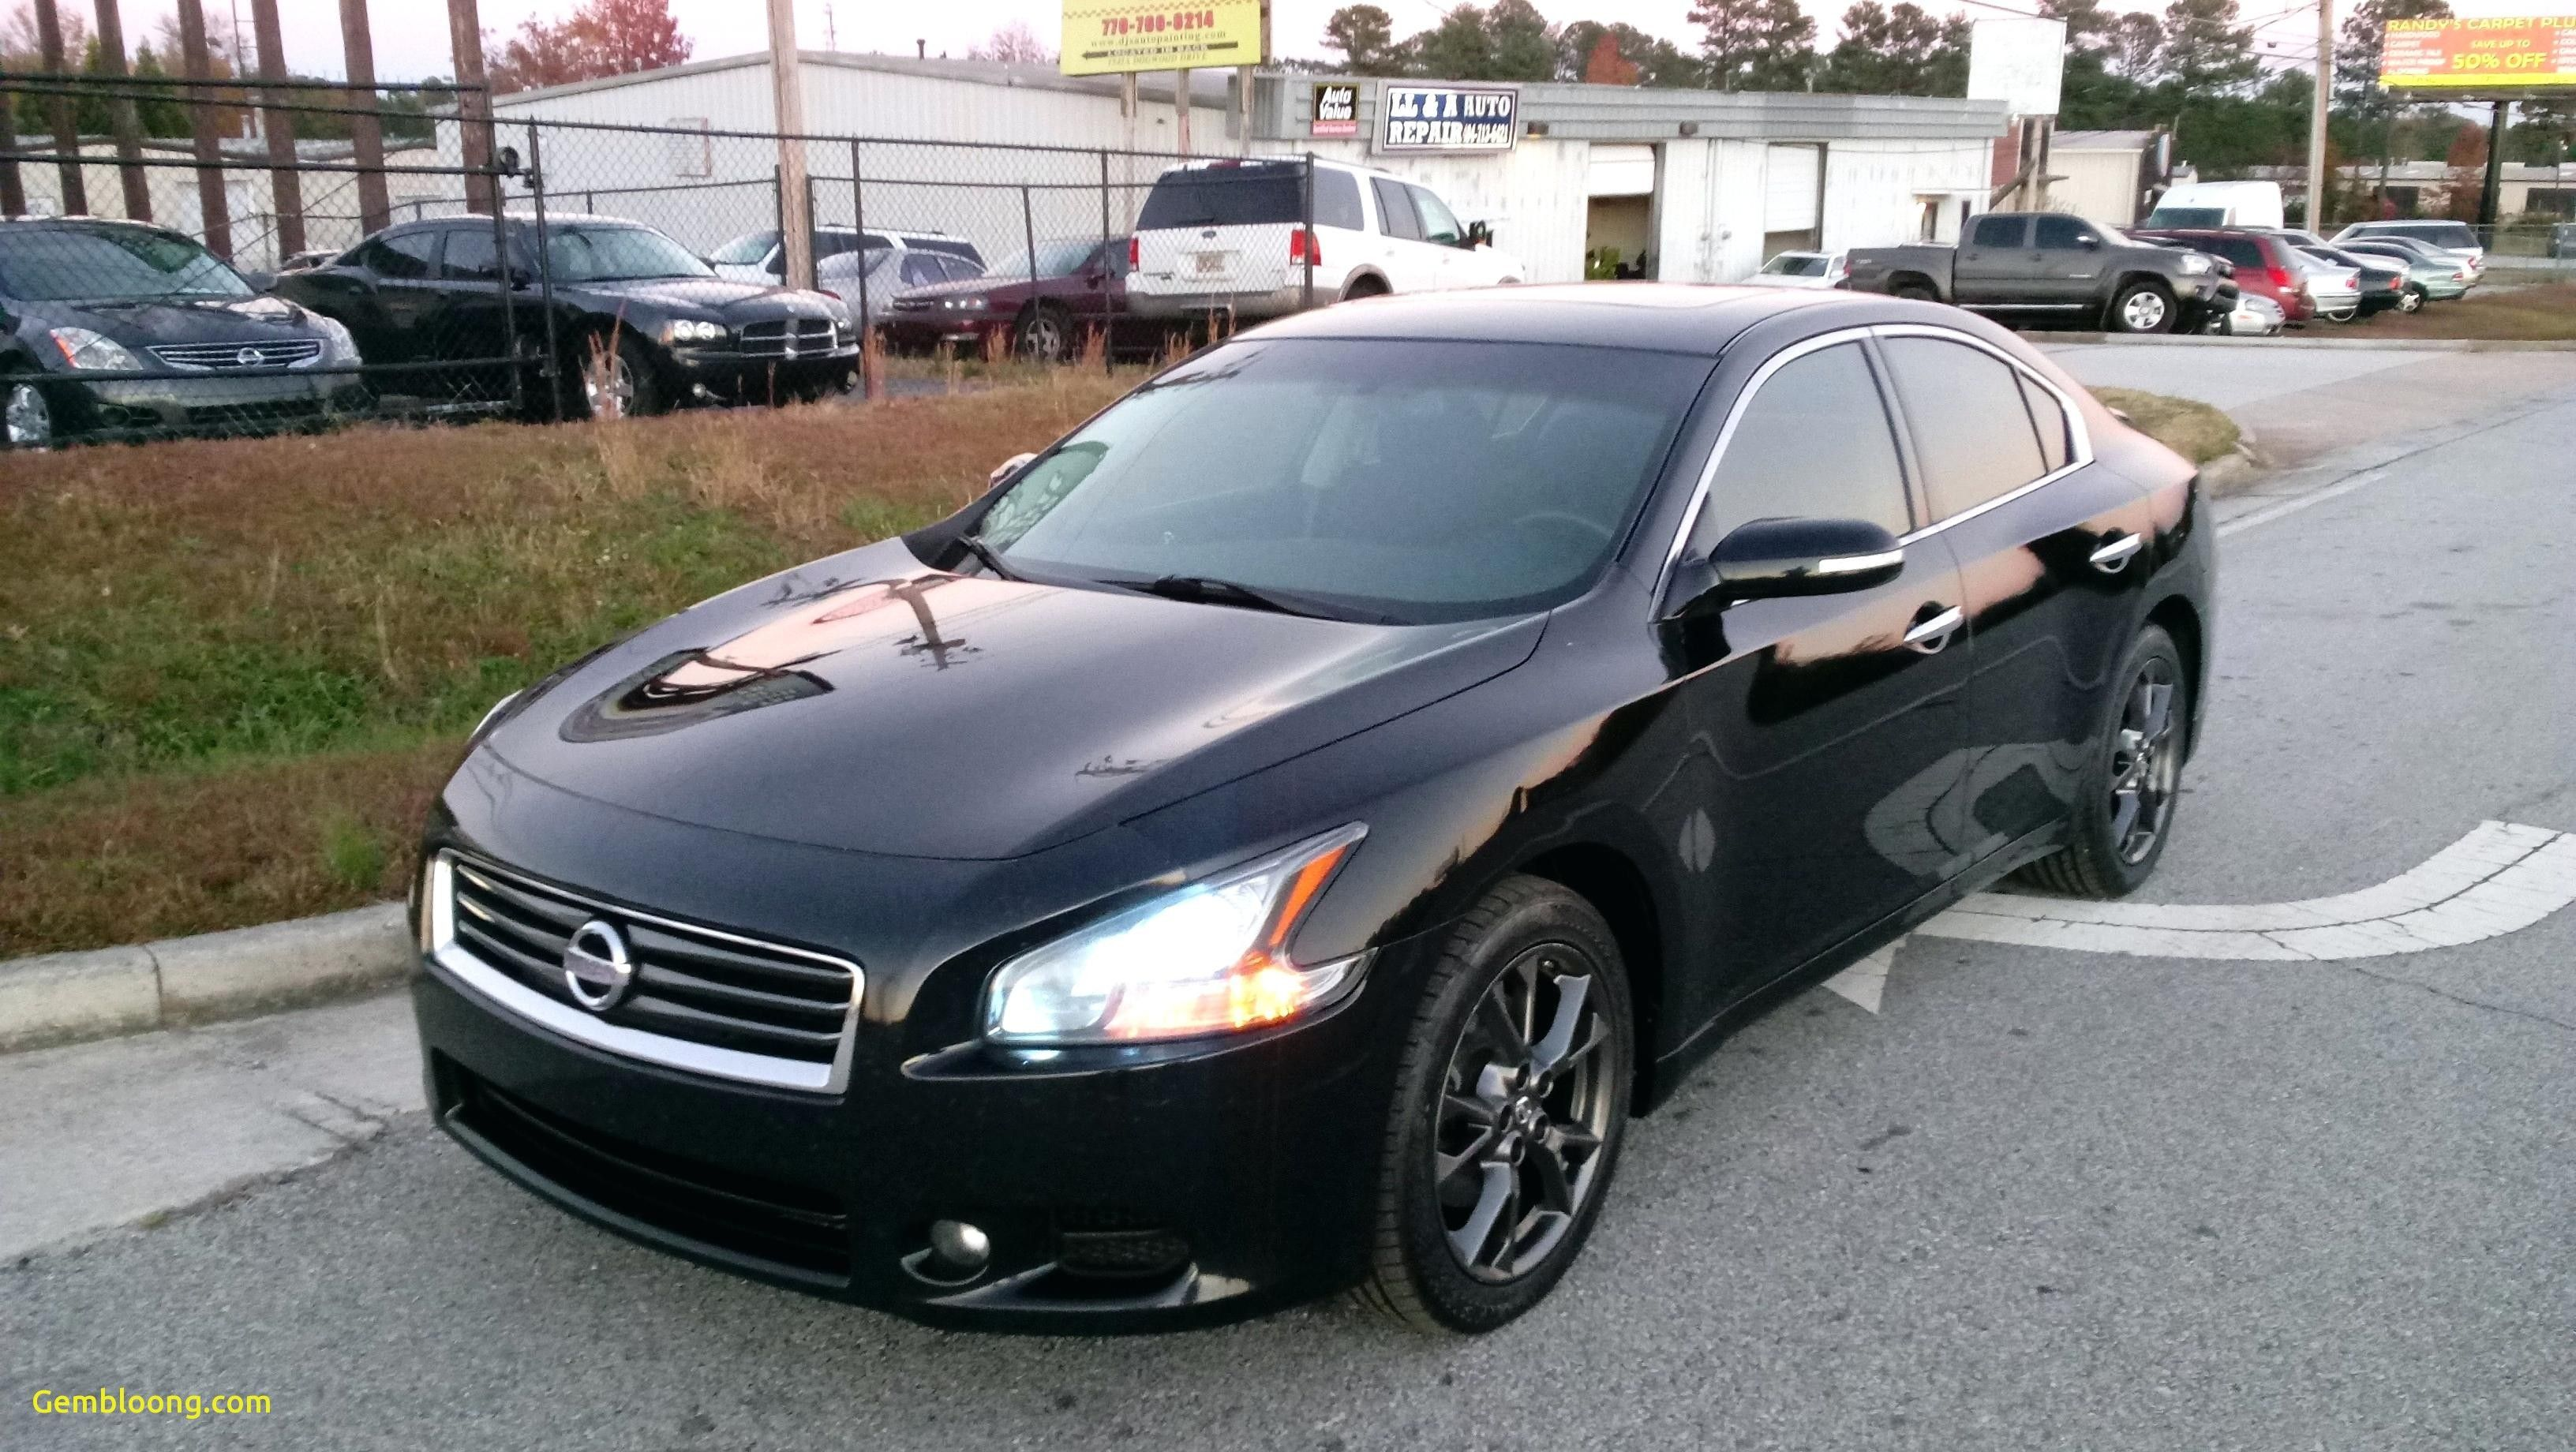 Awesome Cheap Cars for Sale Near Me Check more at http